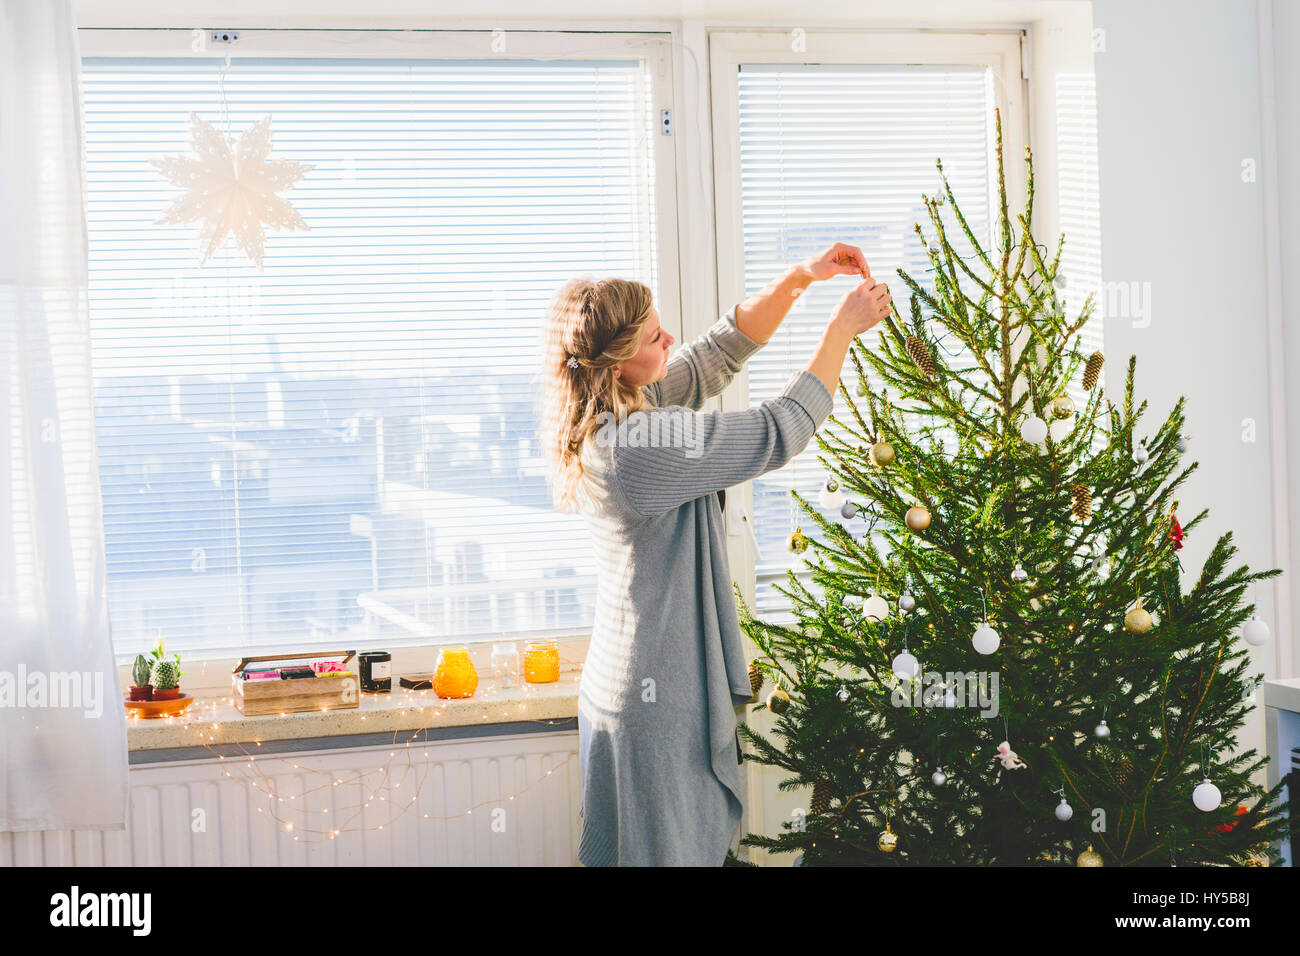 La Finlande, Helsinki, woman decorating Christmas Tree Photo Stock